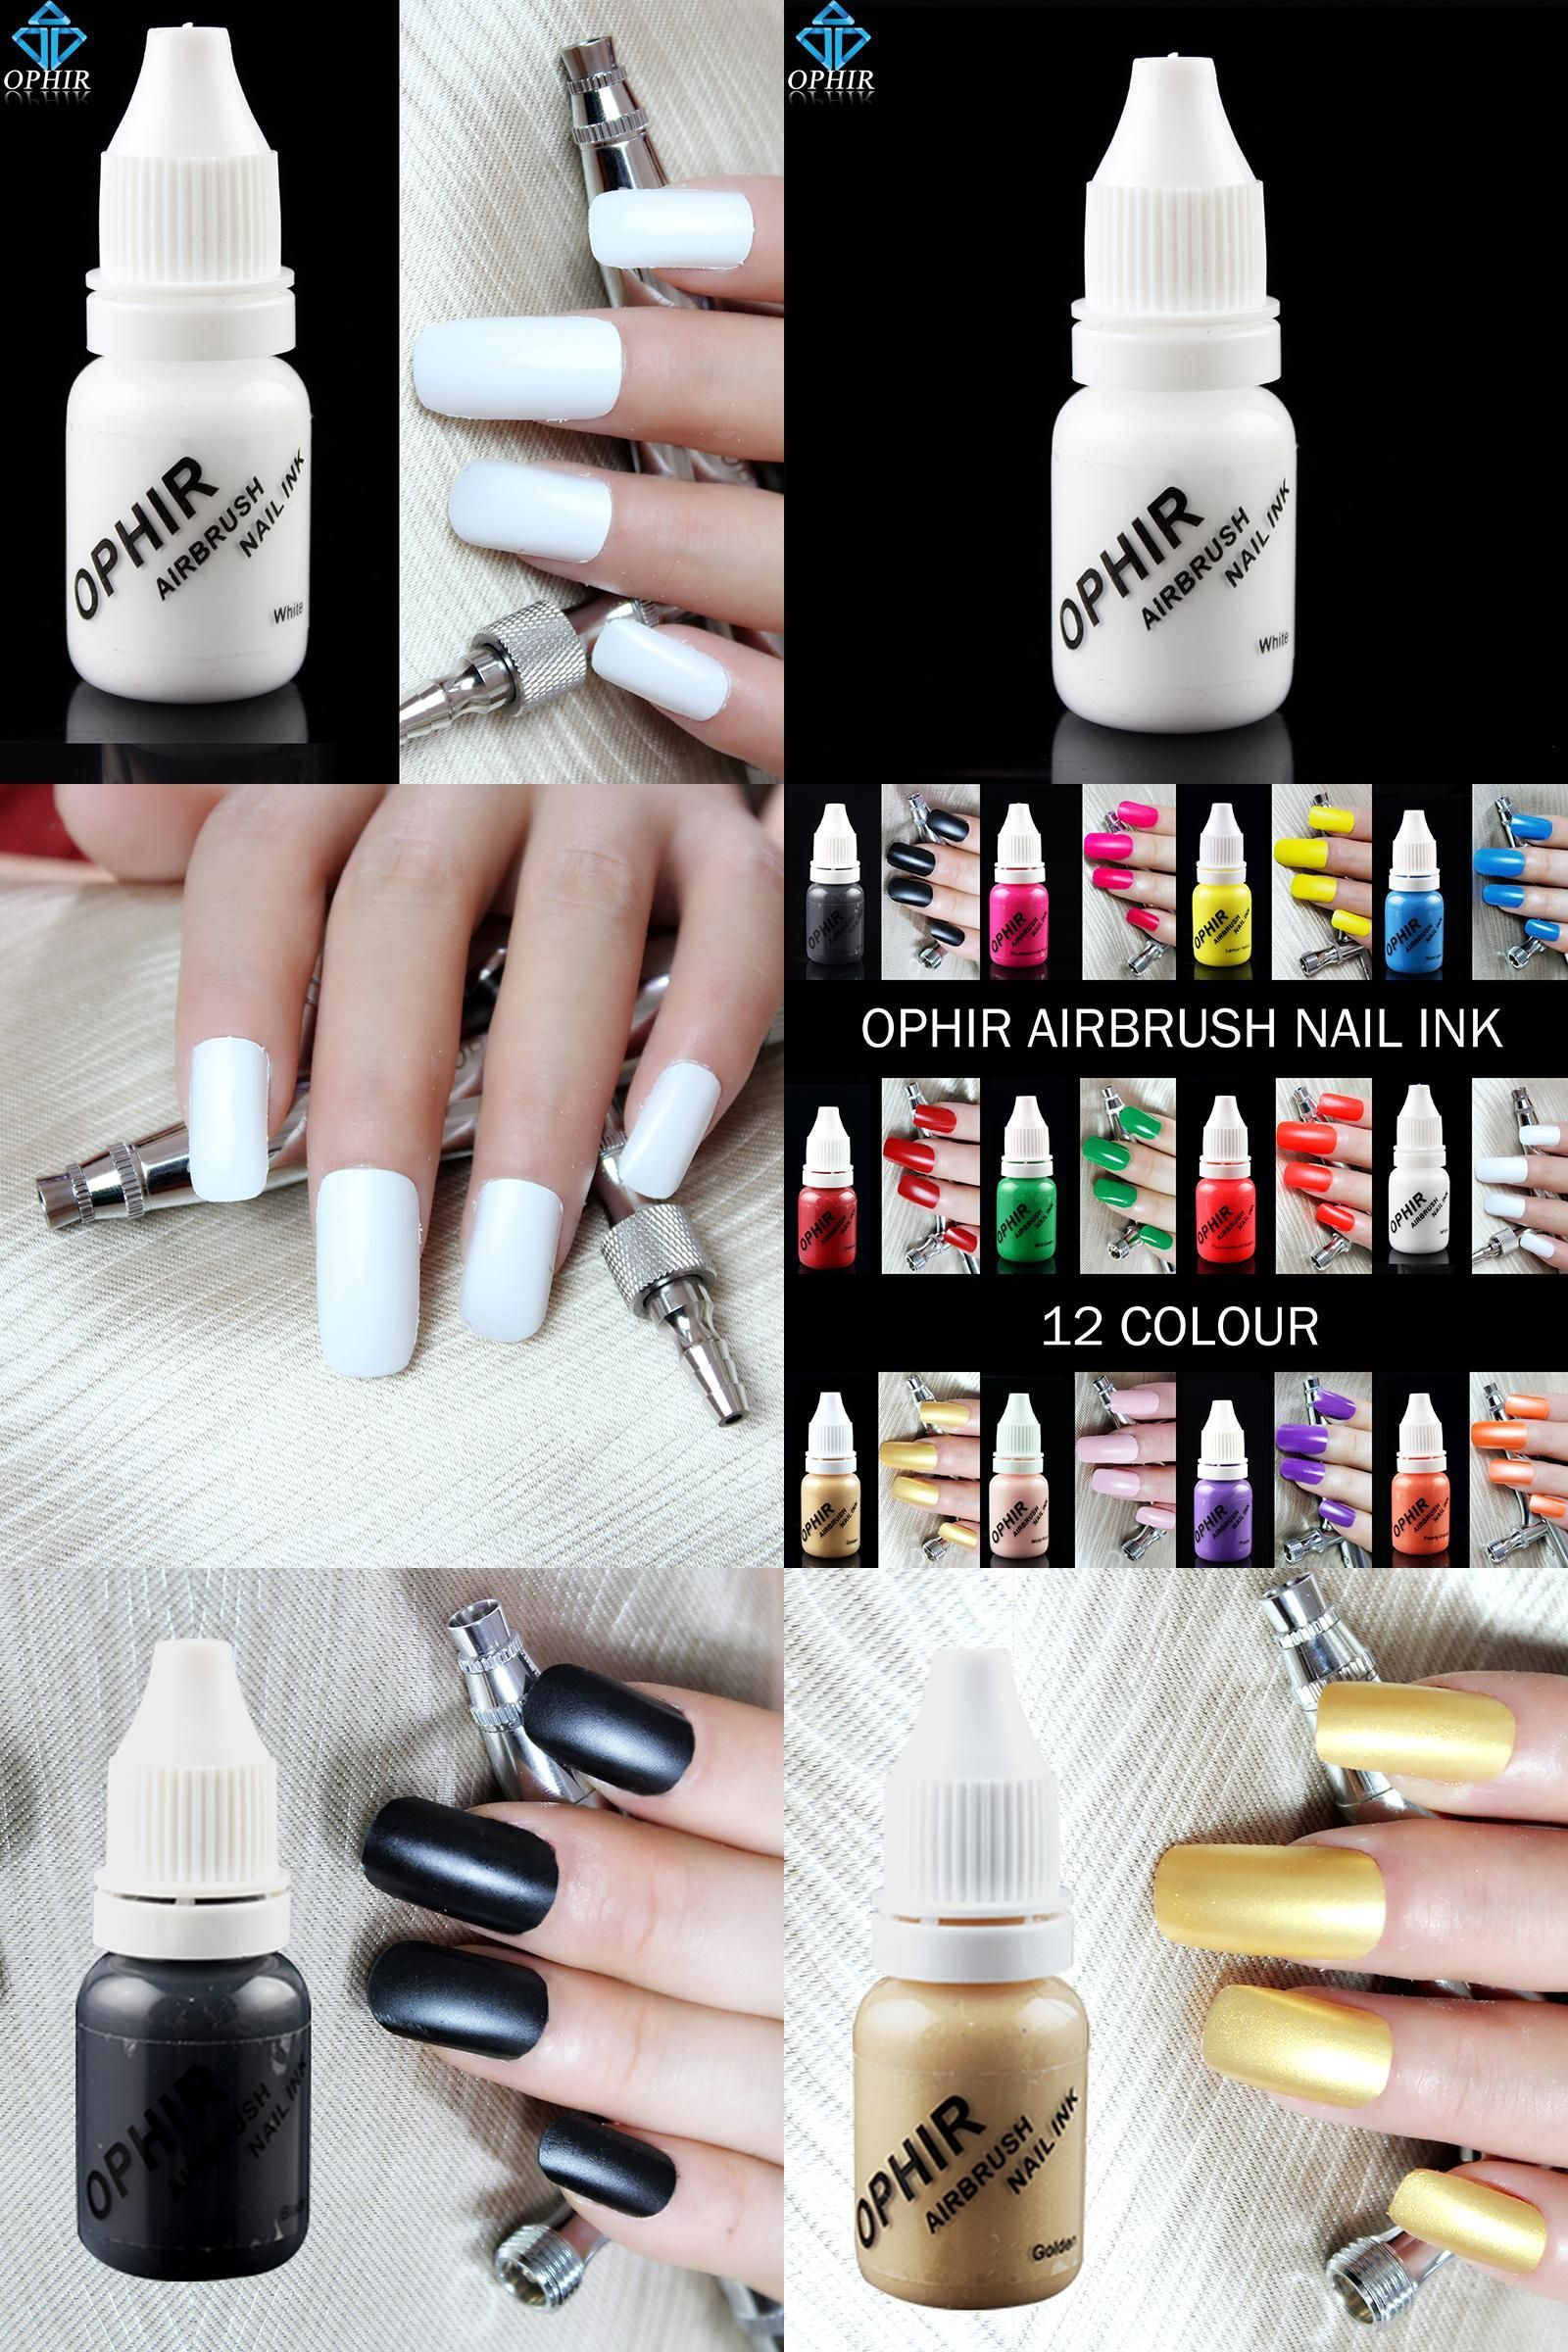 24 Luxury Nail Art Supplies Ophir White Acrylic Paint Airbrush